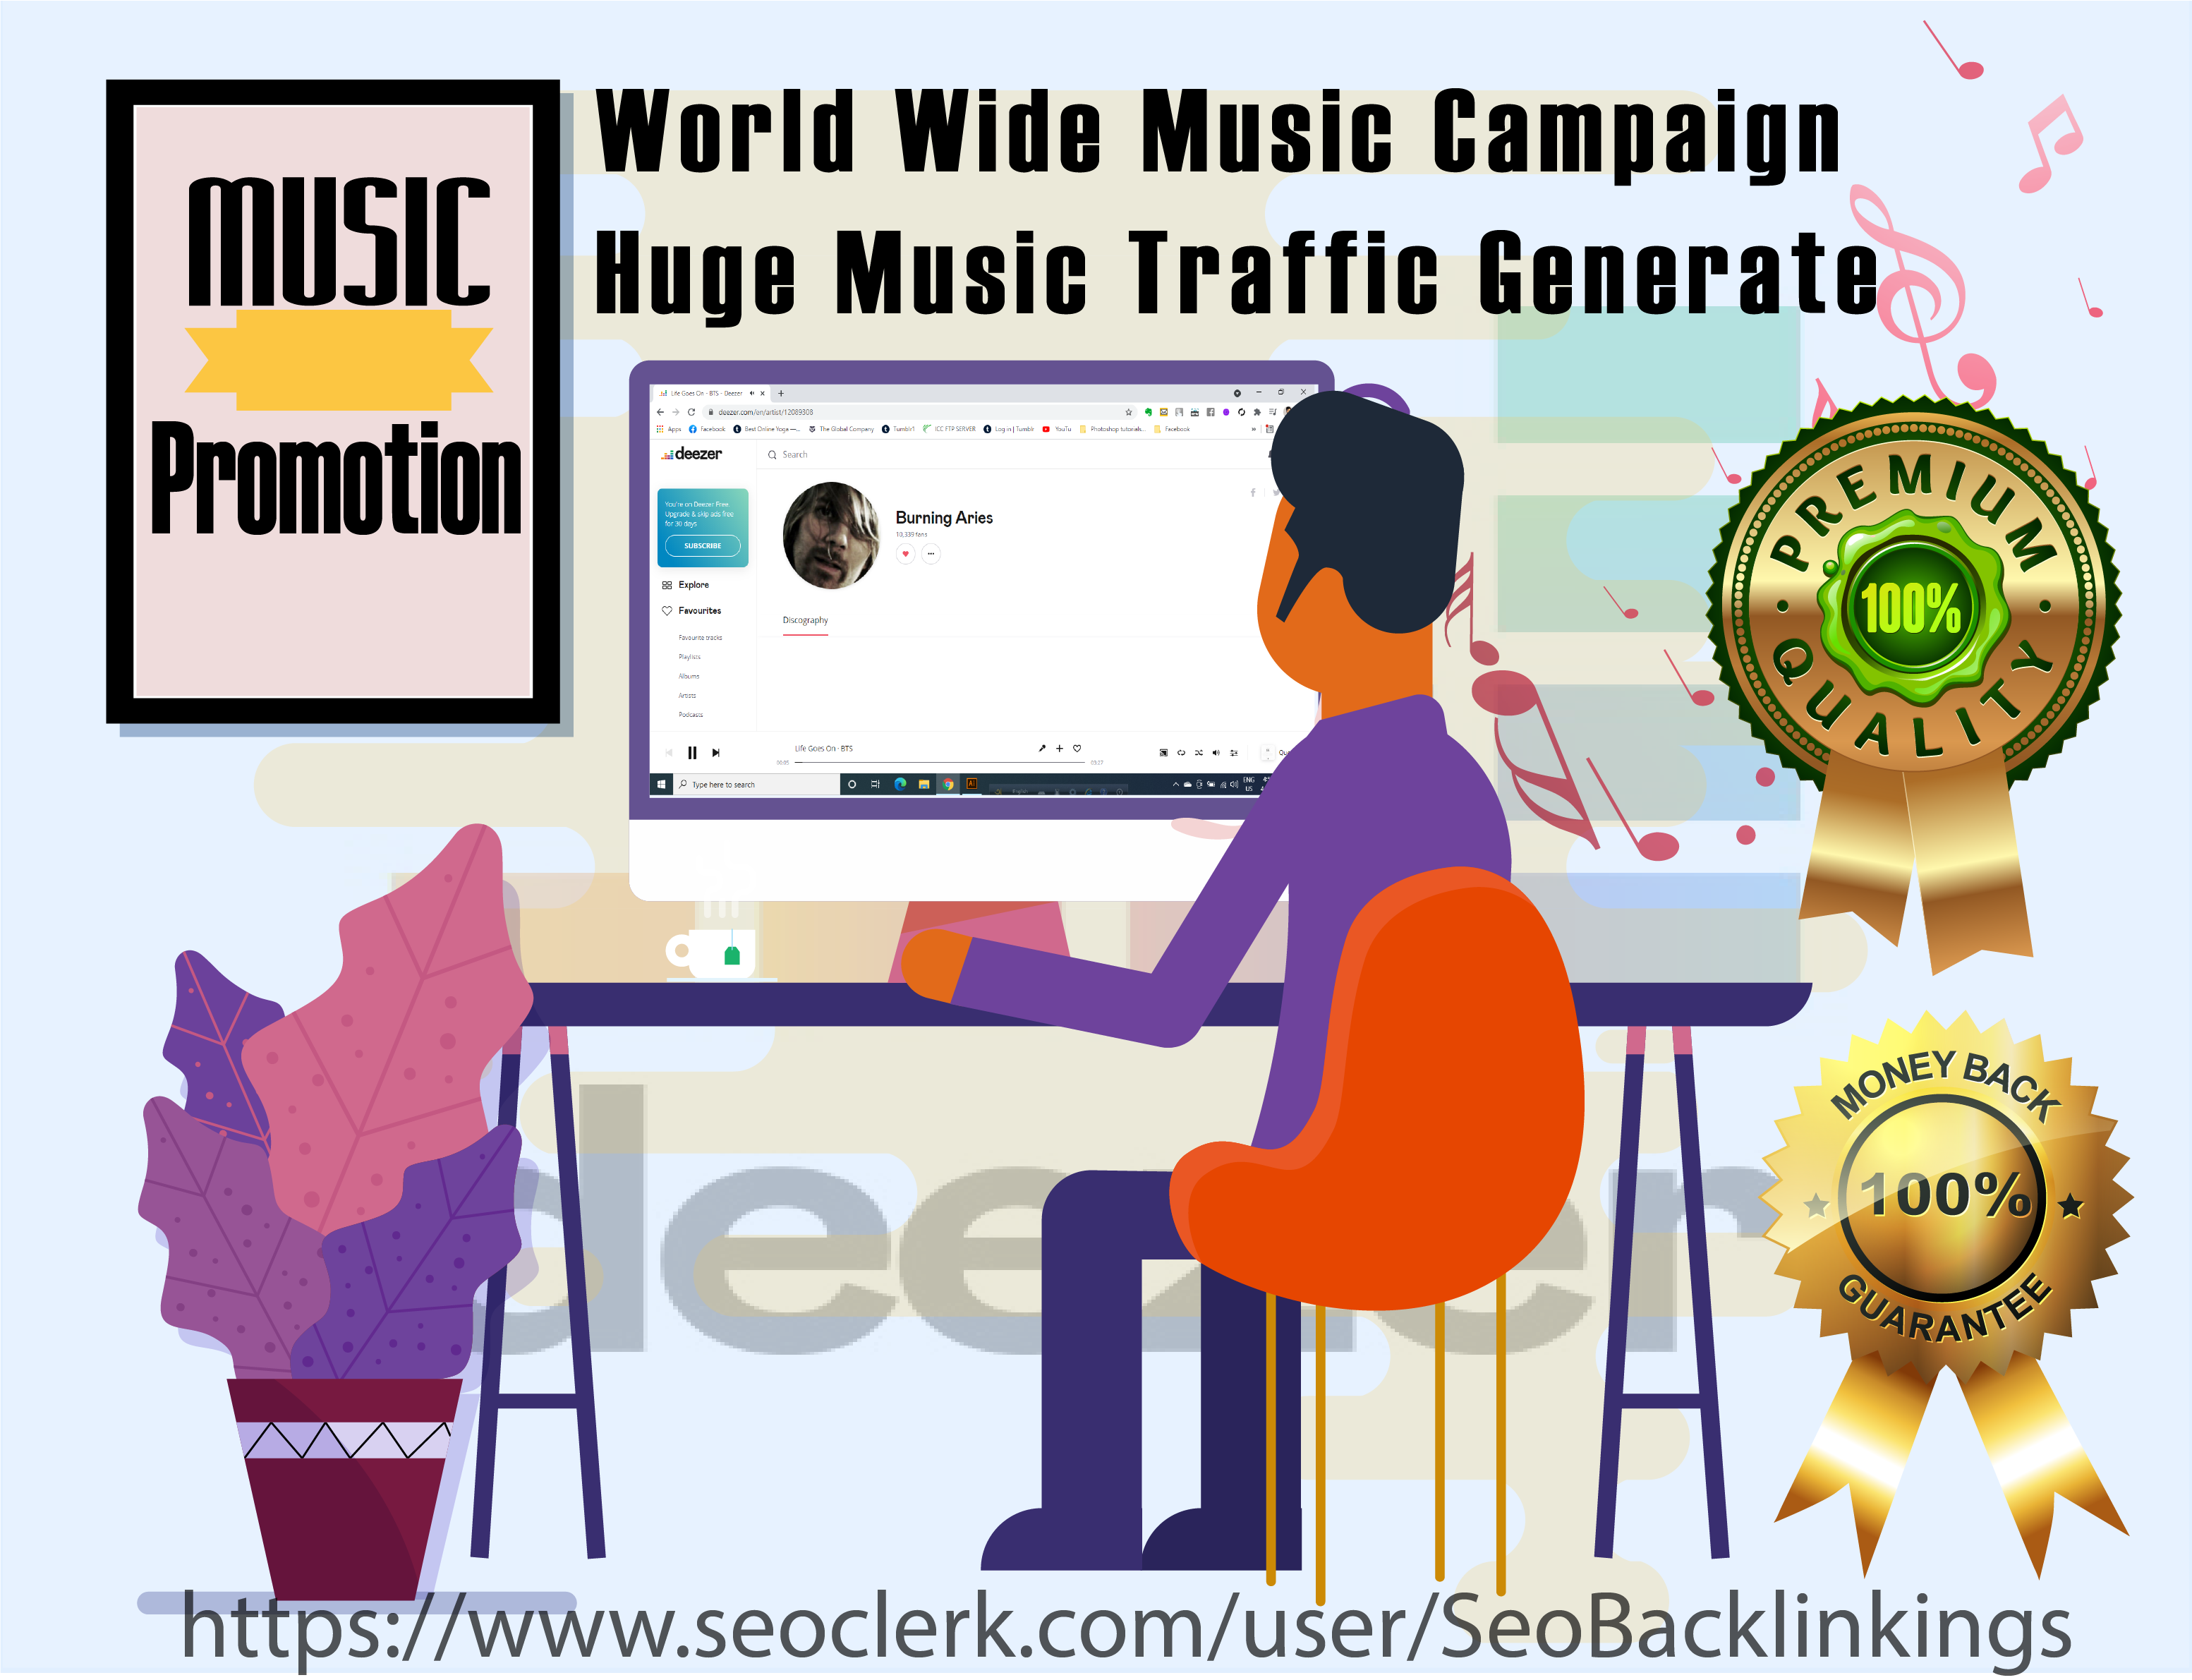 Buy High Quality Deezer Music Promotion Through Real Audience traffics